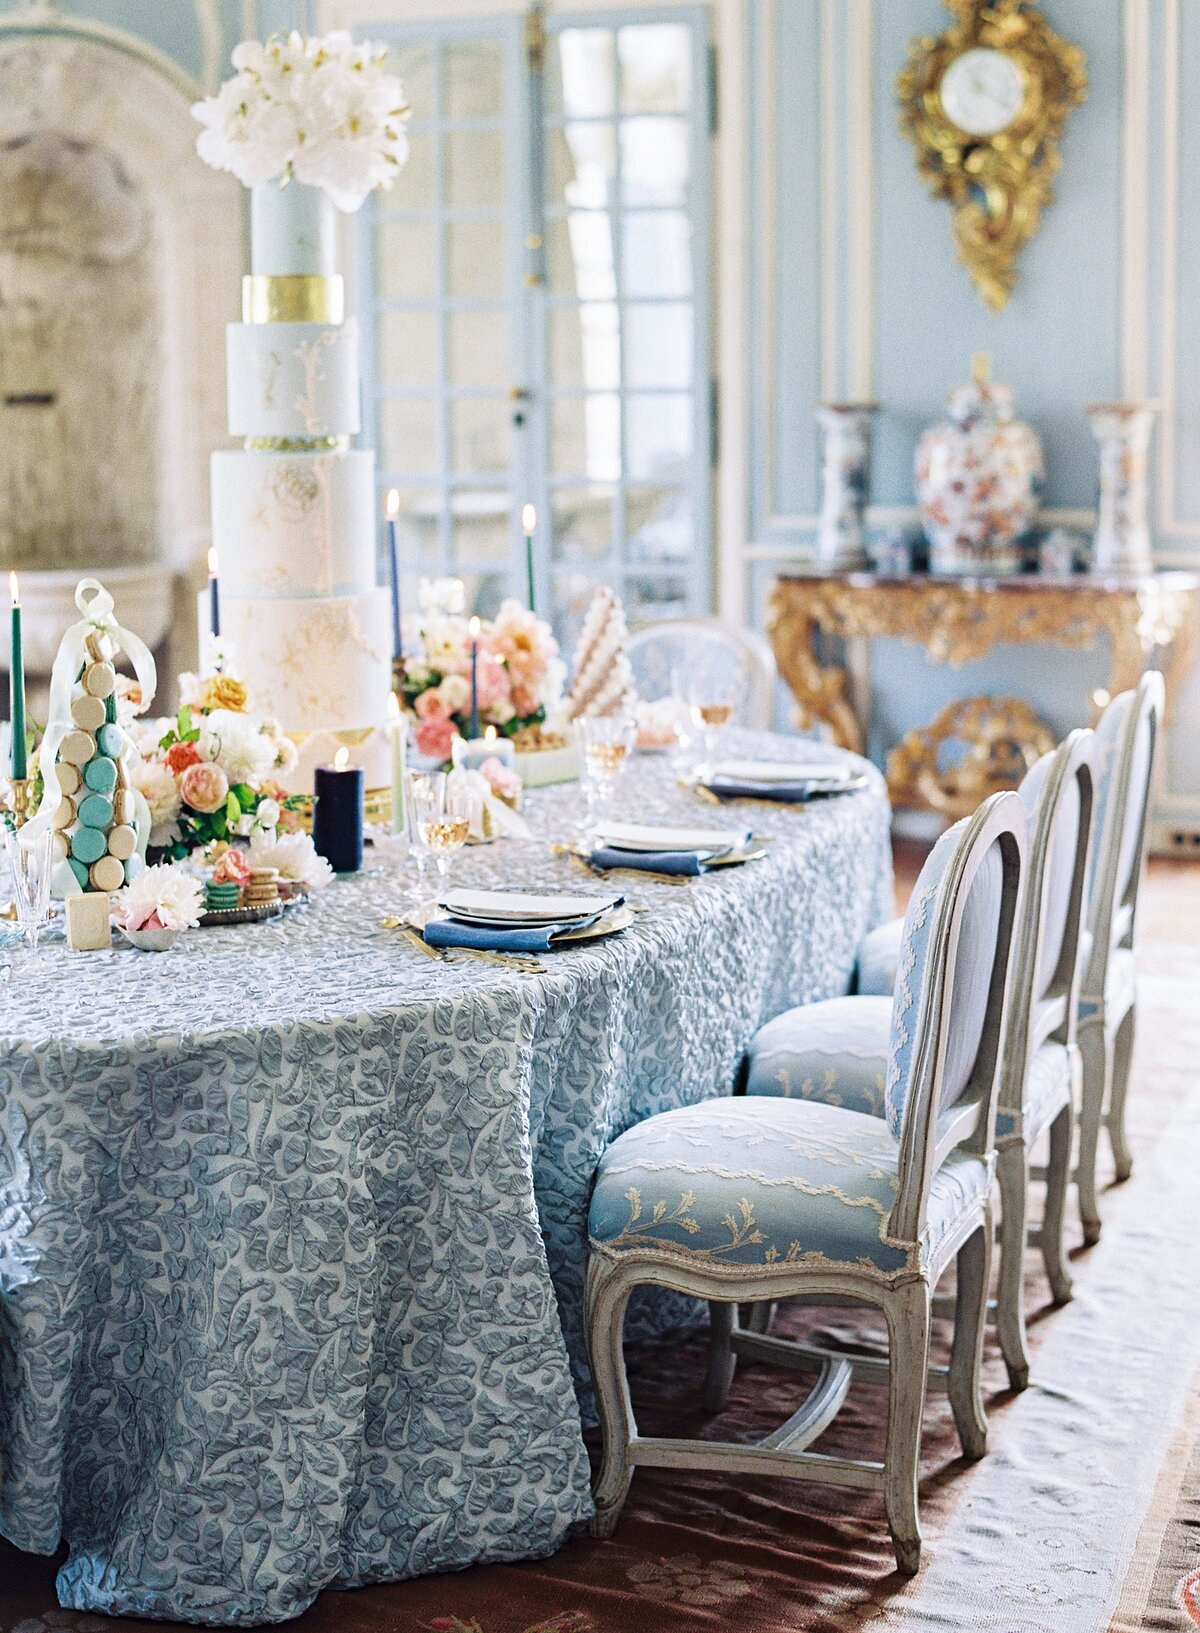 NKT-Events_Wedding-Inspiration-Editorial_Chateau-de-Villette-Bridal_0144